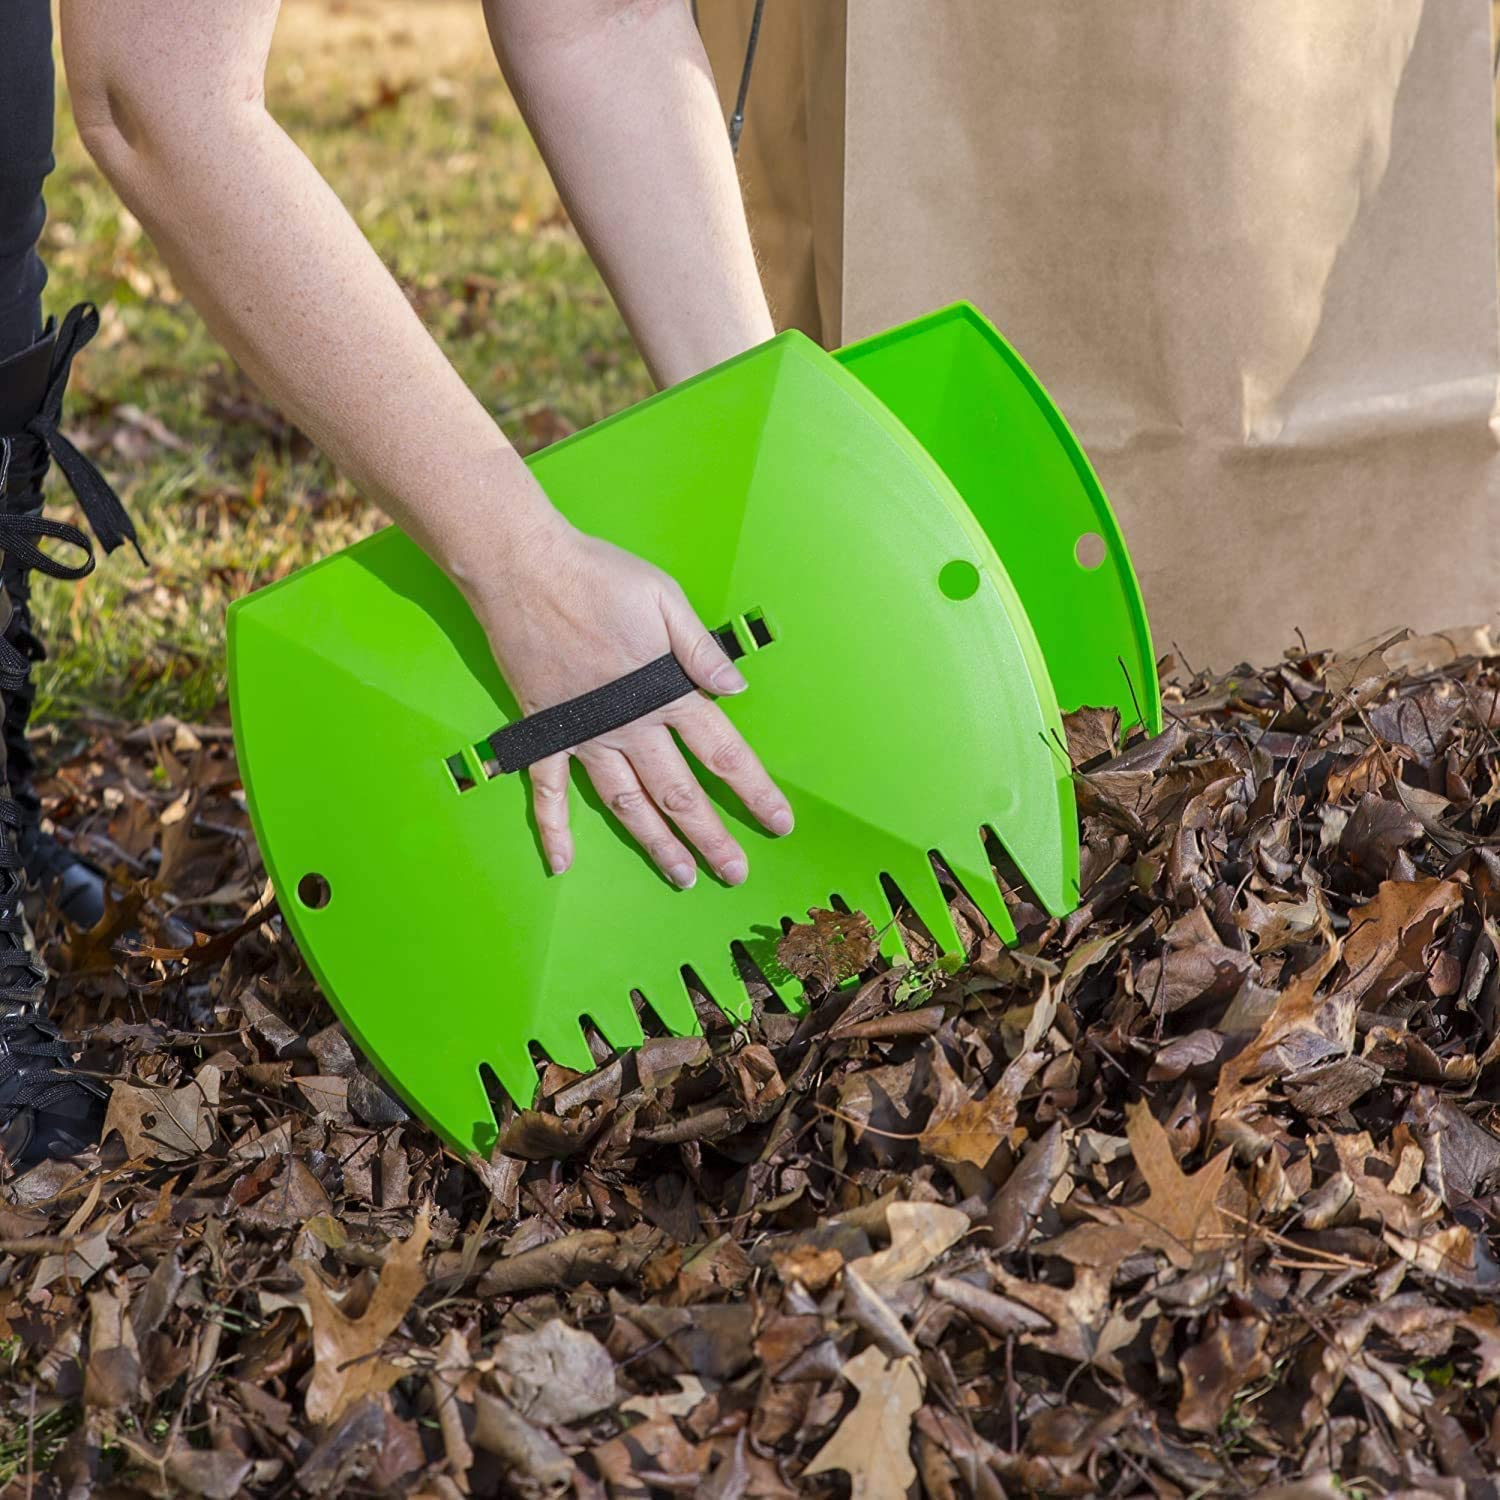 AKlamater Garden Yard Leaf Scoops Green 1 Pair Lawn Claws with Adjustable Elastic Handle Strap for Collecting Garden Leaf Rubbish Grass